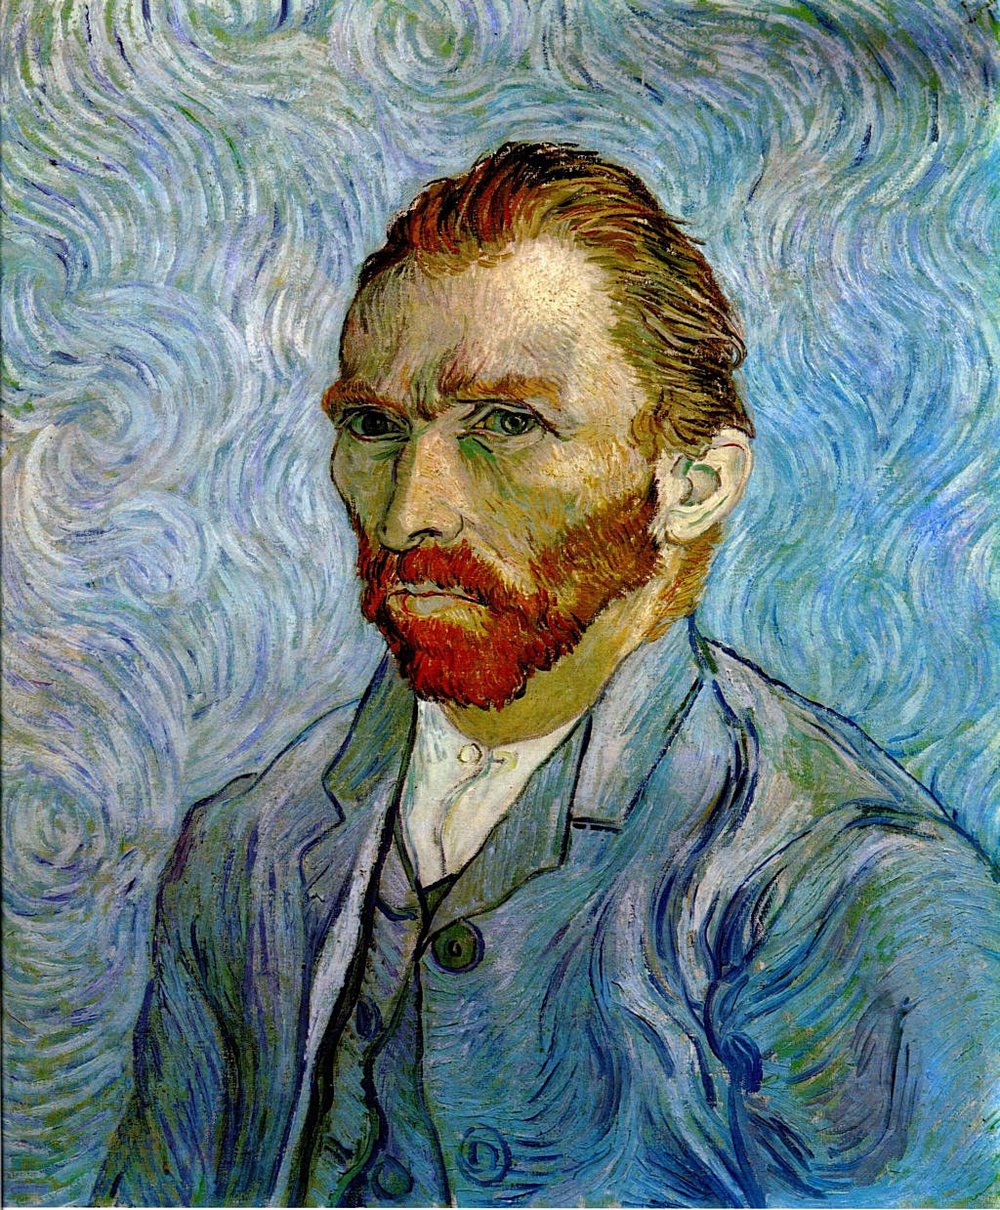 Self Portrait by Vincent van Gogh 1889